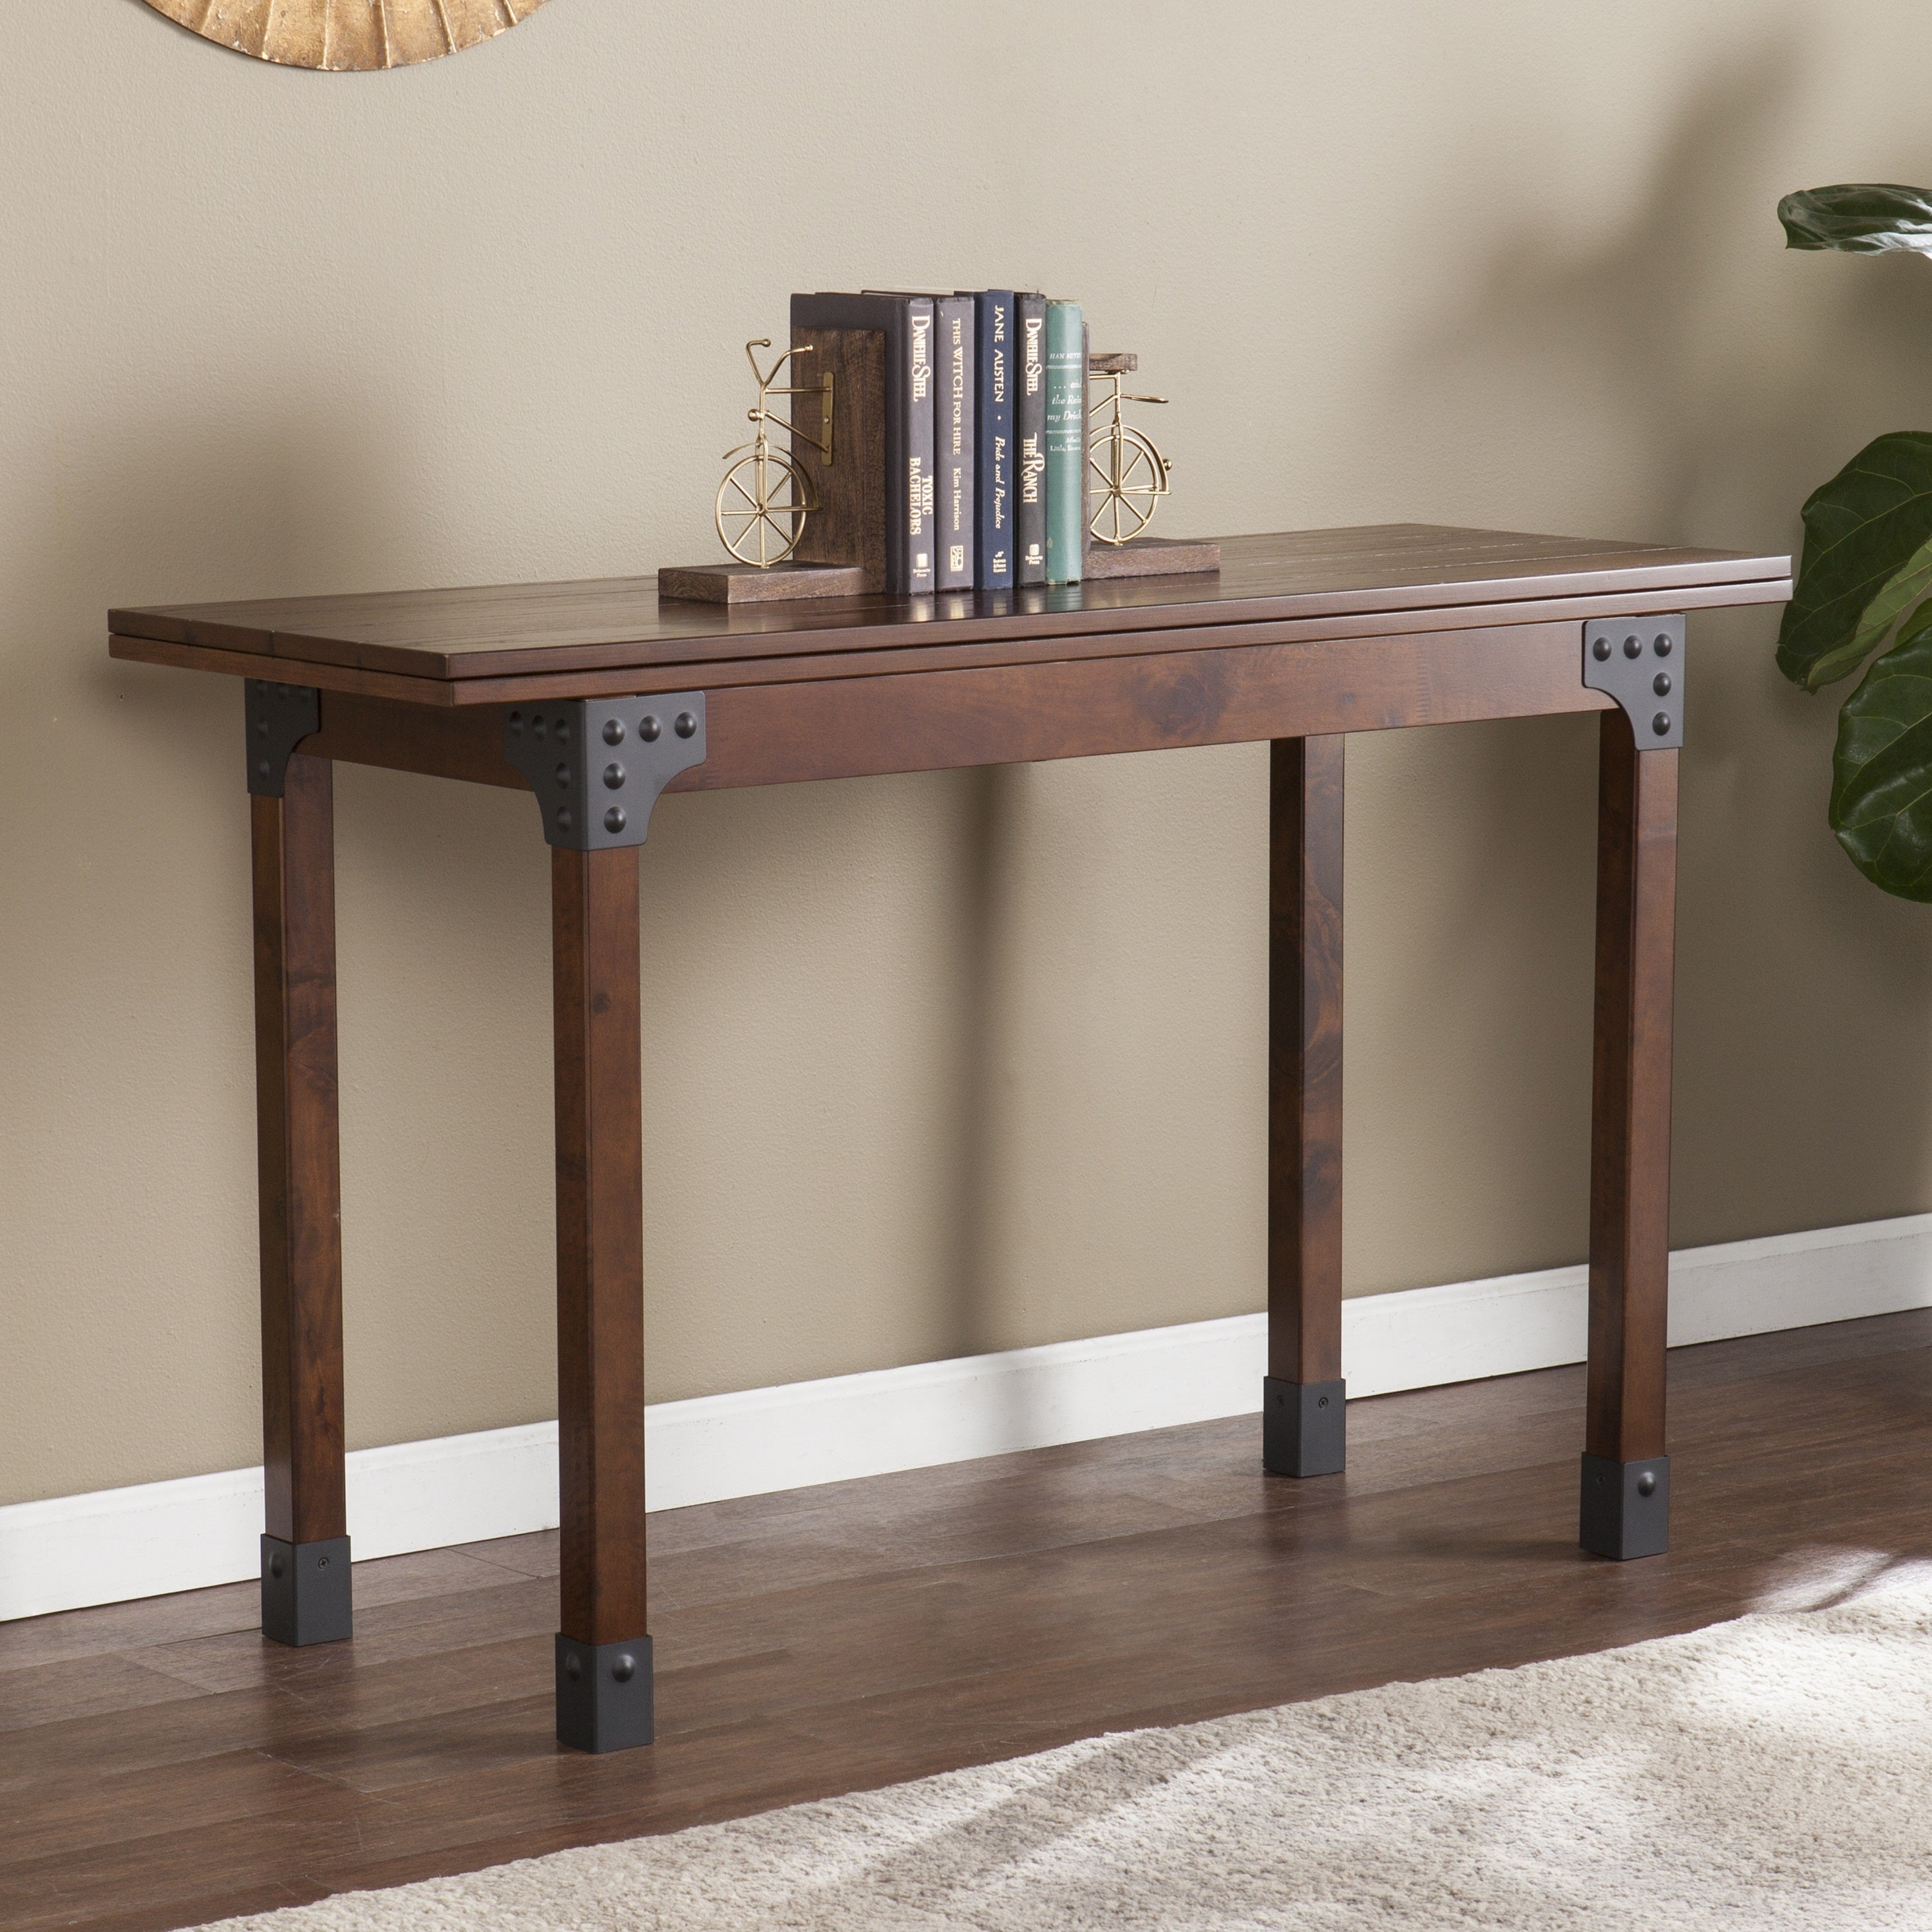 sofa table that converts to a dining table wall bed sofa and convertible box coffee table. Black Bedroom Furniture Sets. Home Design Ideas